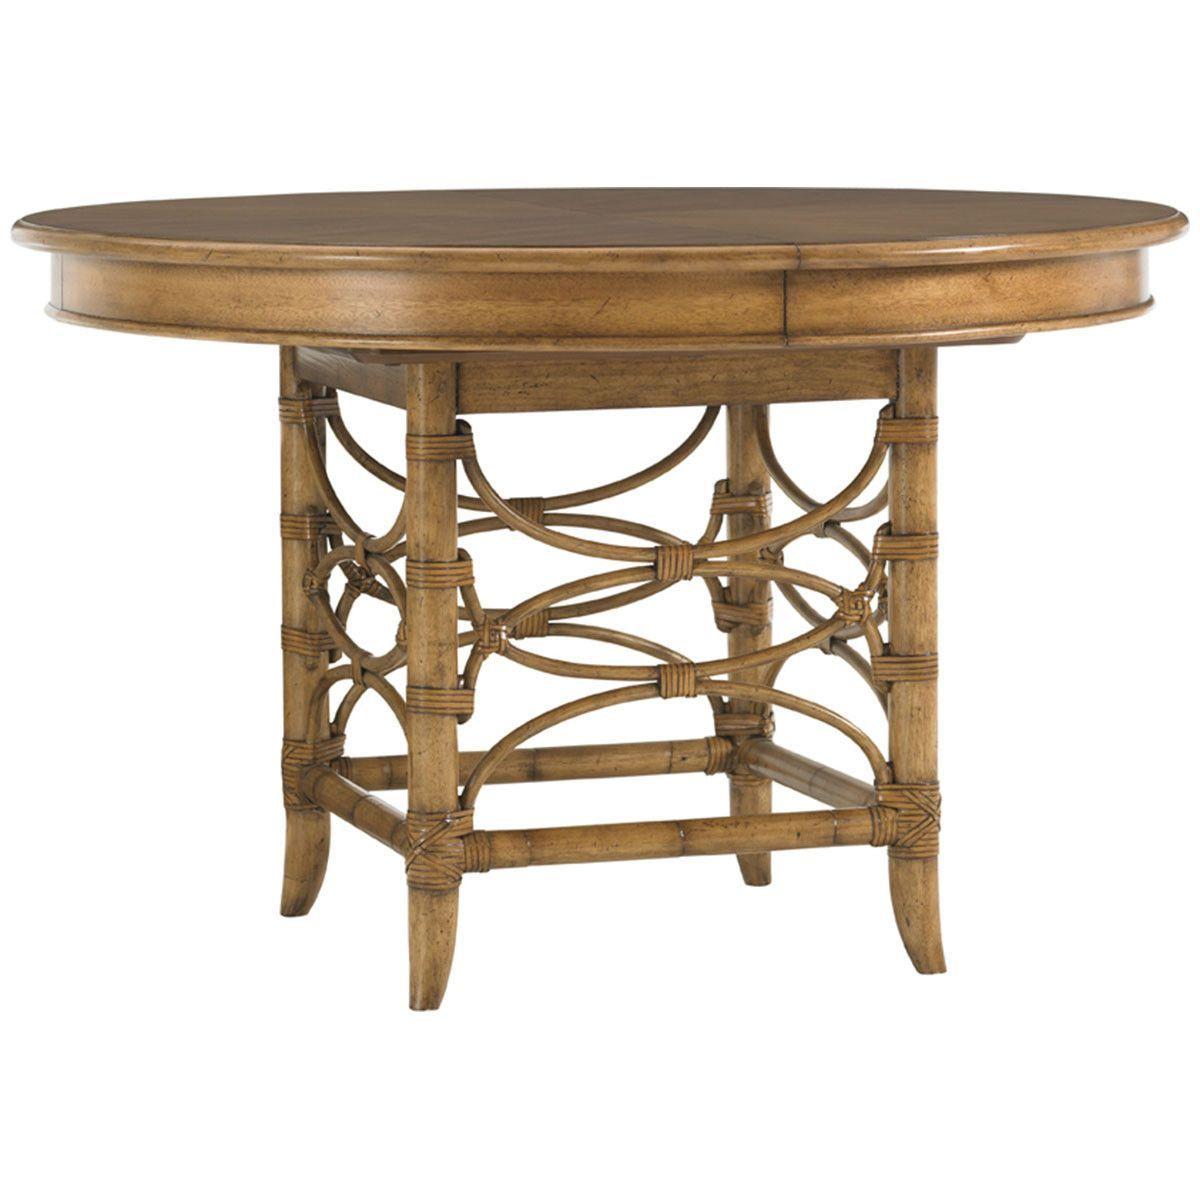 Tommy Bahama Beach House Coconut Grove Dining Table 540-870C